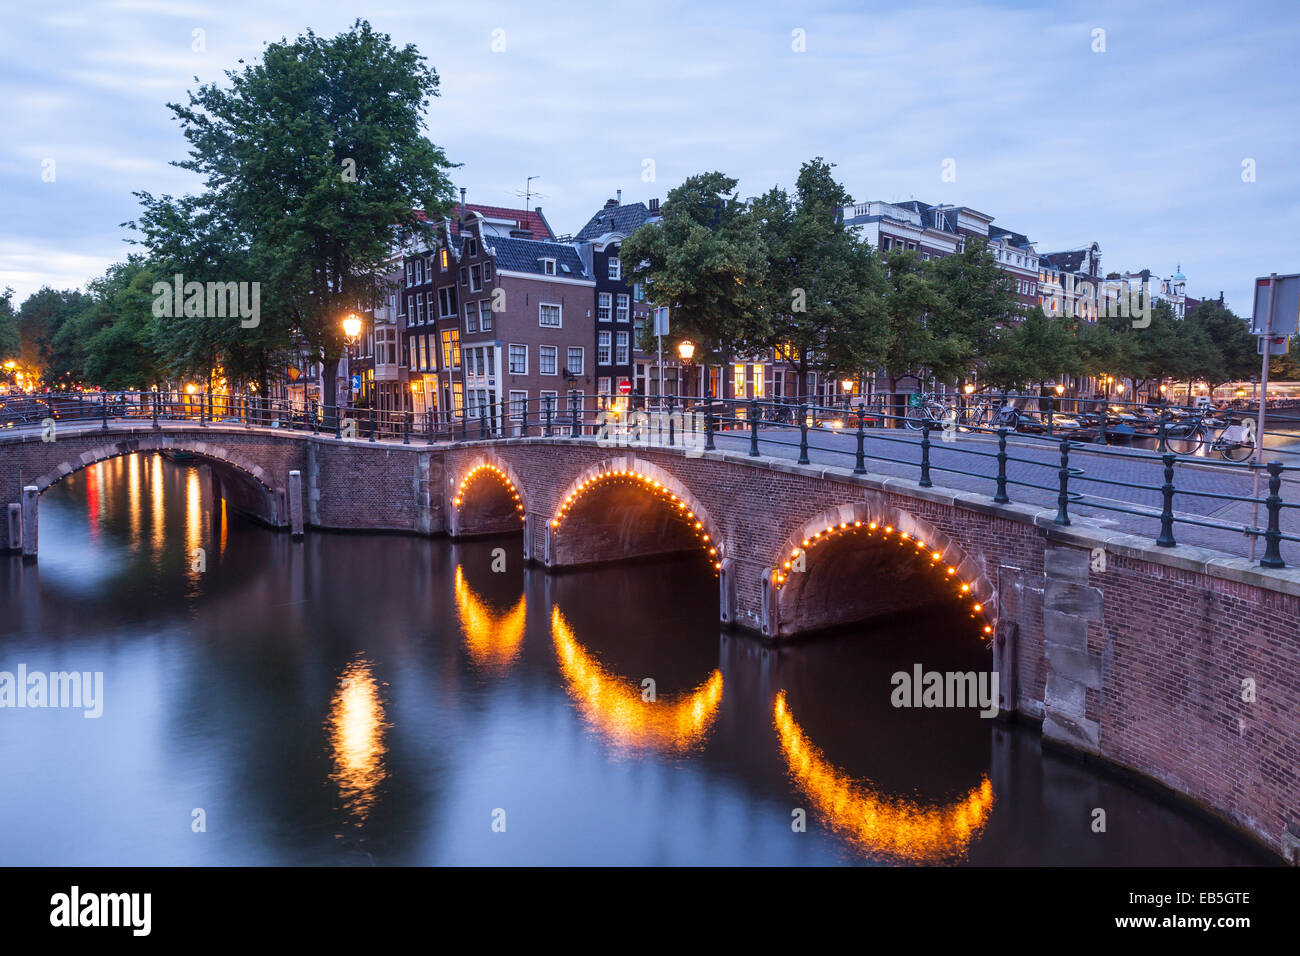 Reguliersgracht Canal at night. The historic centre of Amsterdam and its canals have been designqted a World Heritage - Stock Image